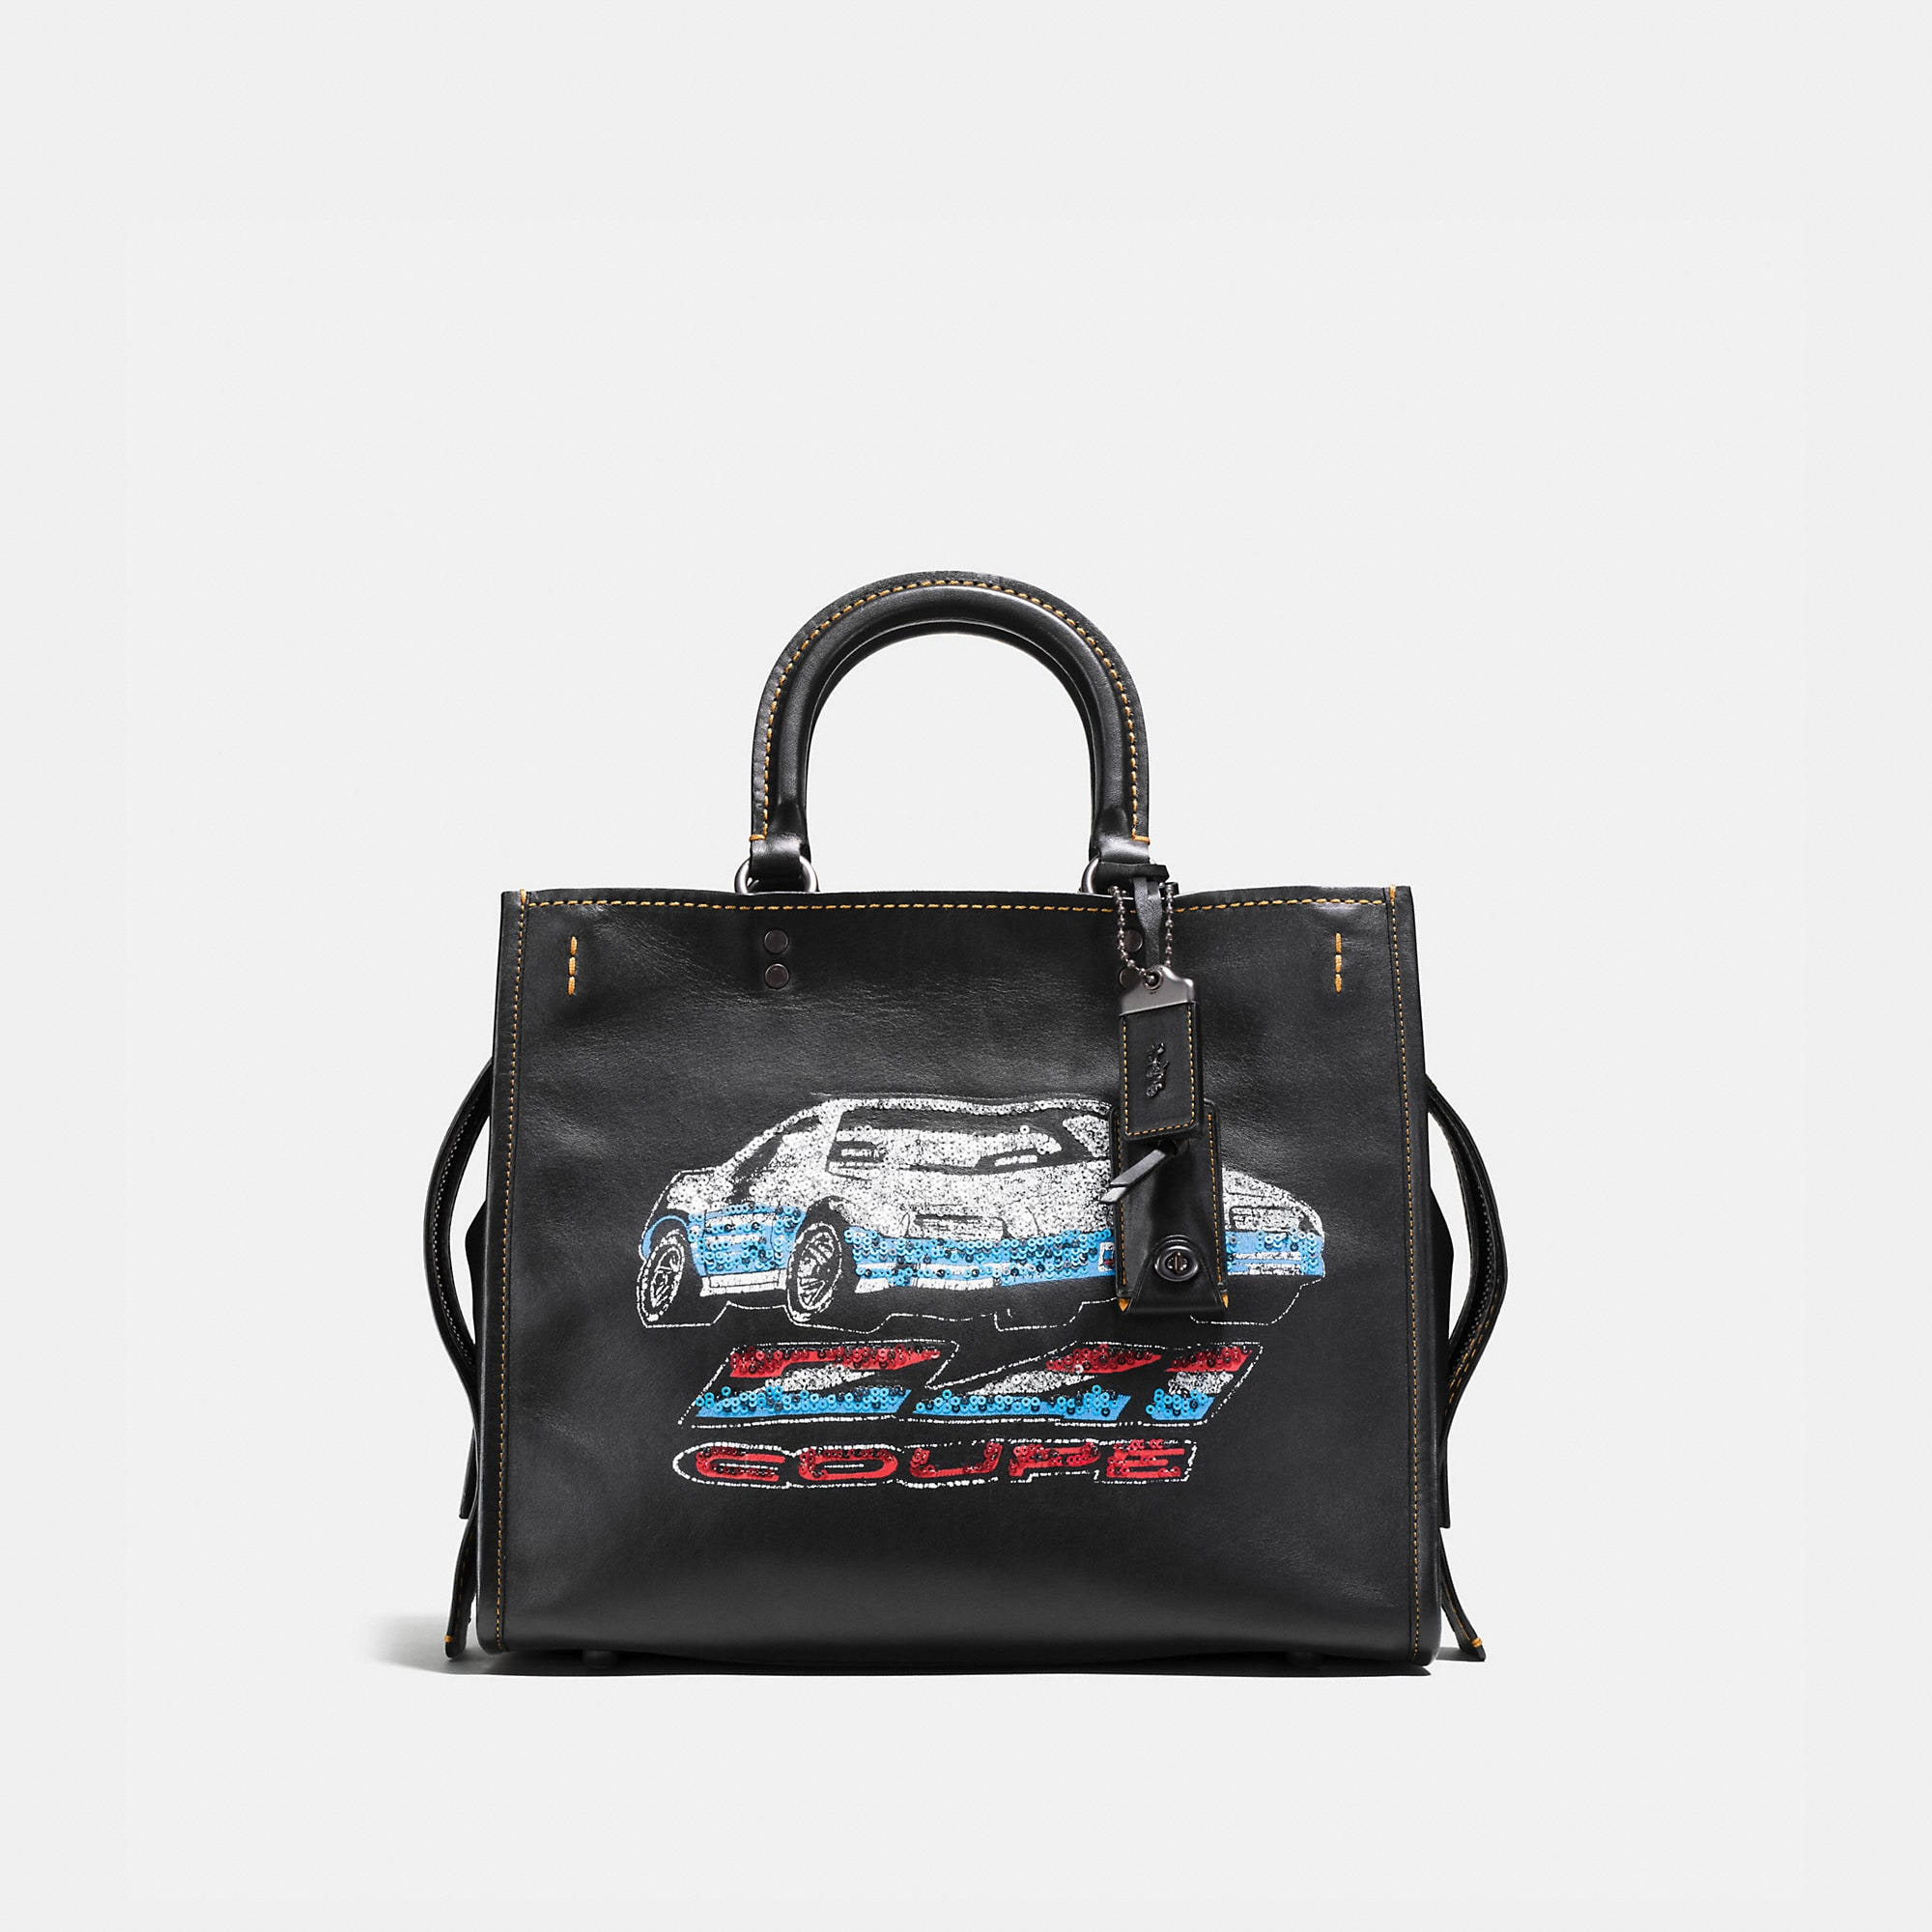 Coach Rogue In Glovetanned Leather With Car Embellishment